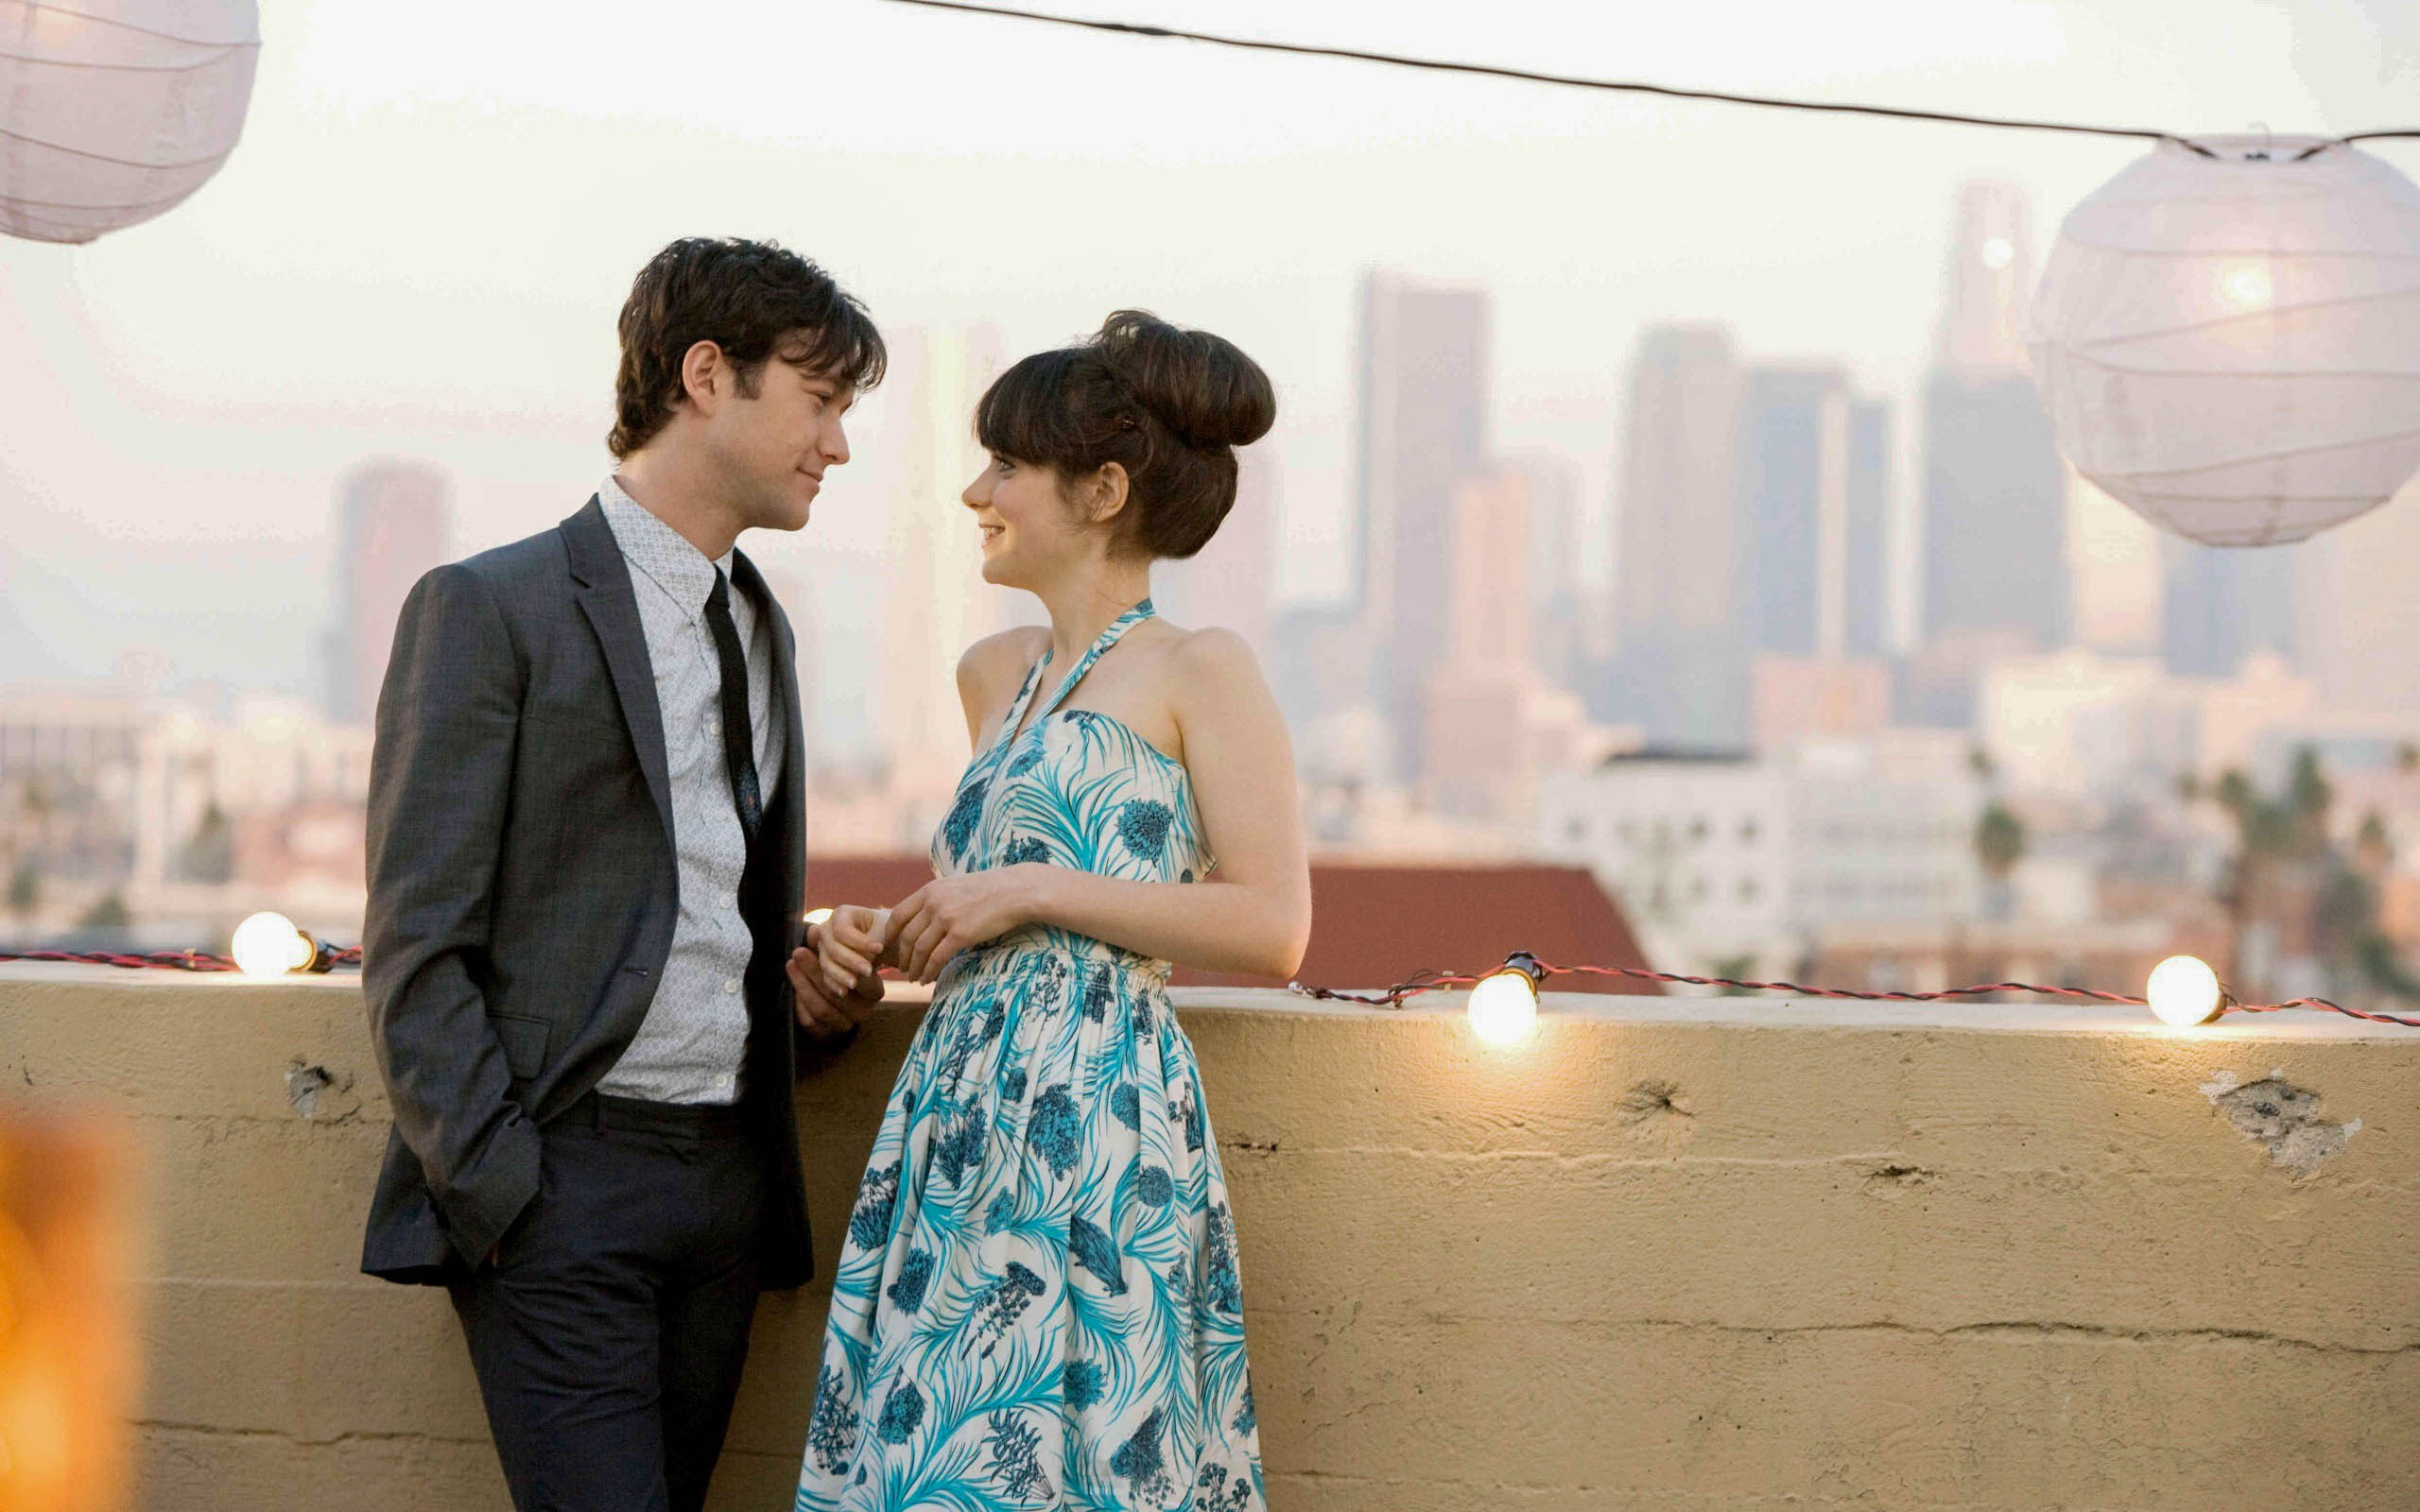 500 Days Of Summer Wallpapers and Background Images   stmednet 2560x1600